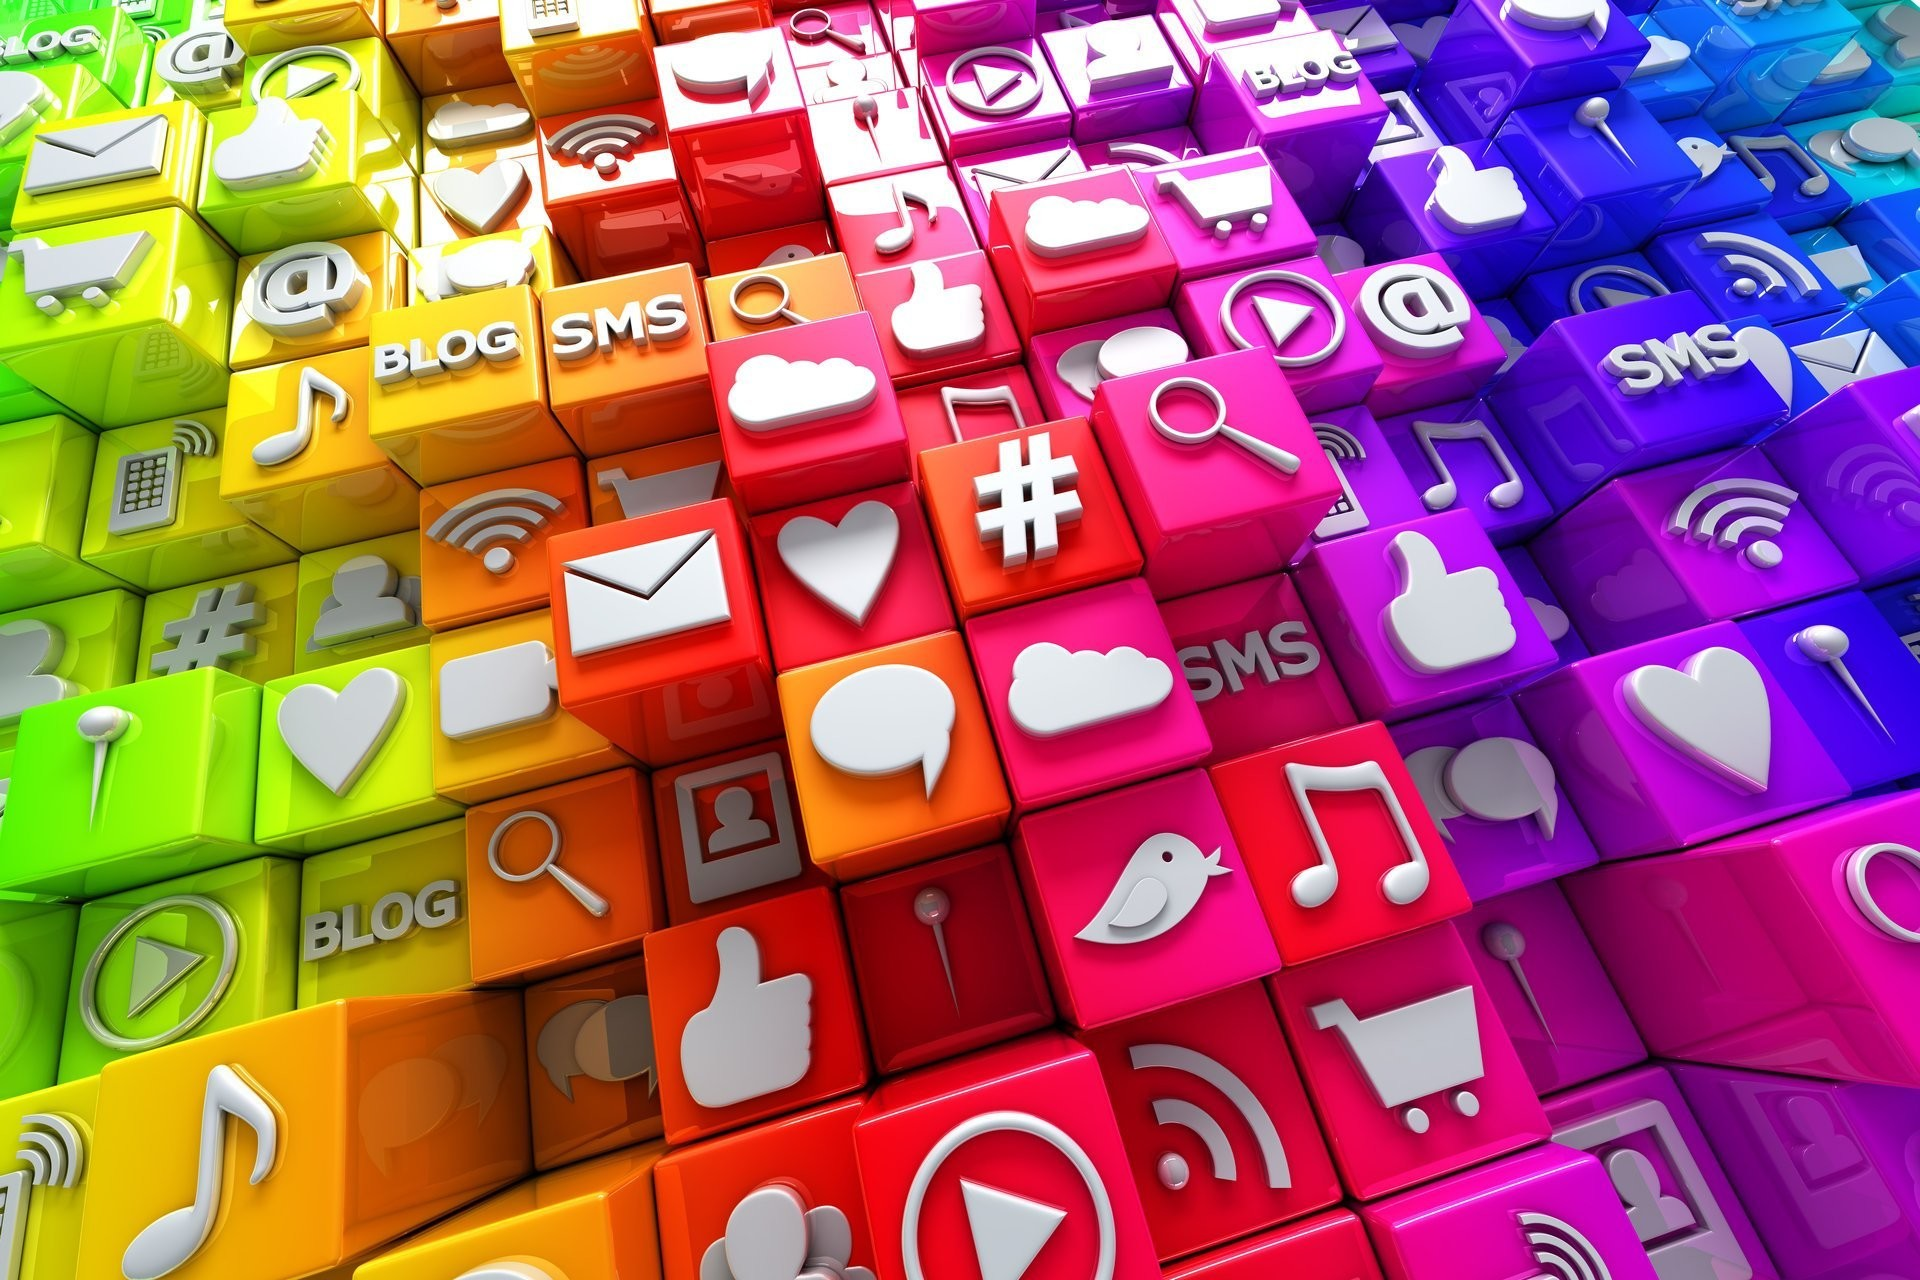 social media icons 3d cubes colorful blocks icons social networks internet